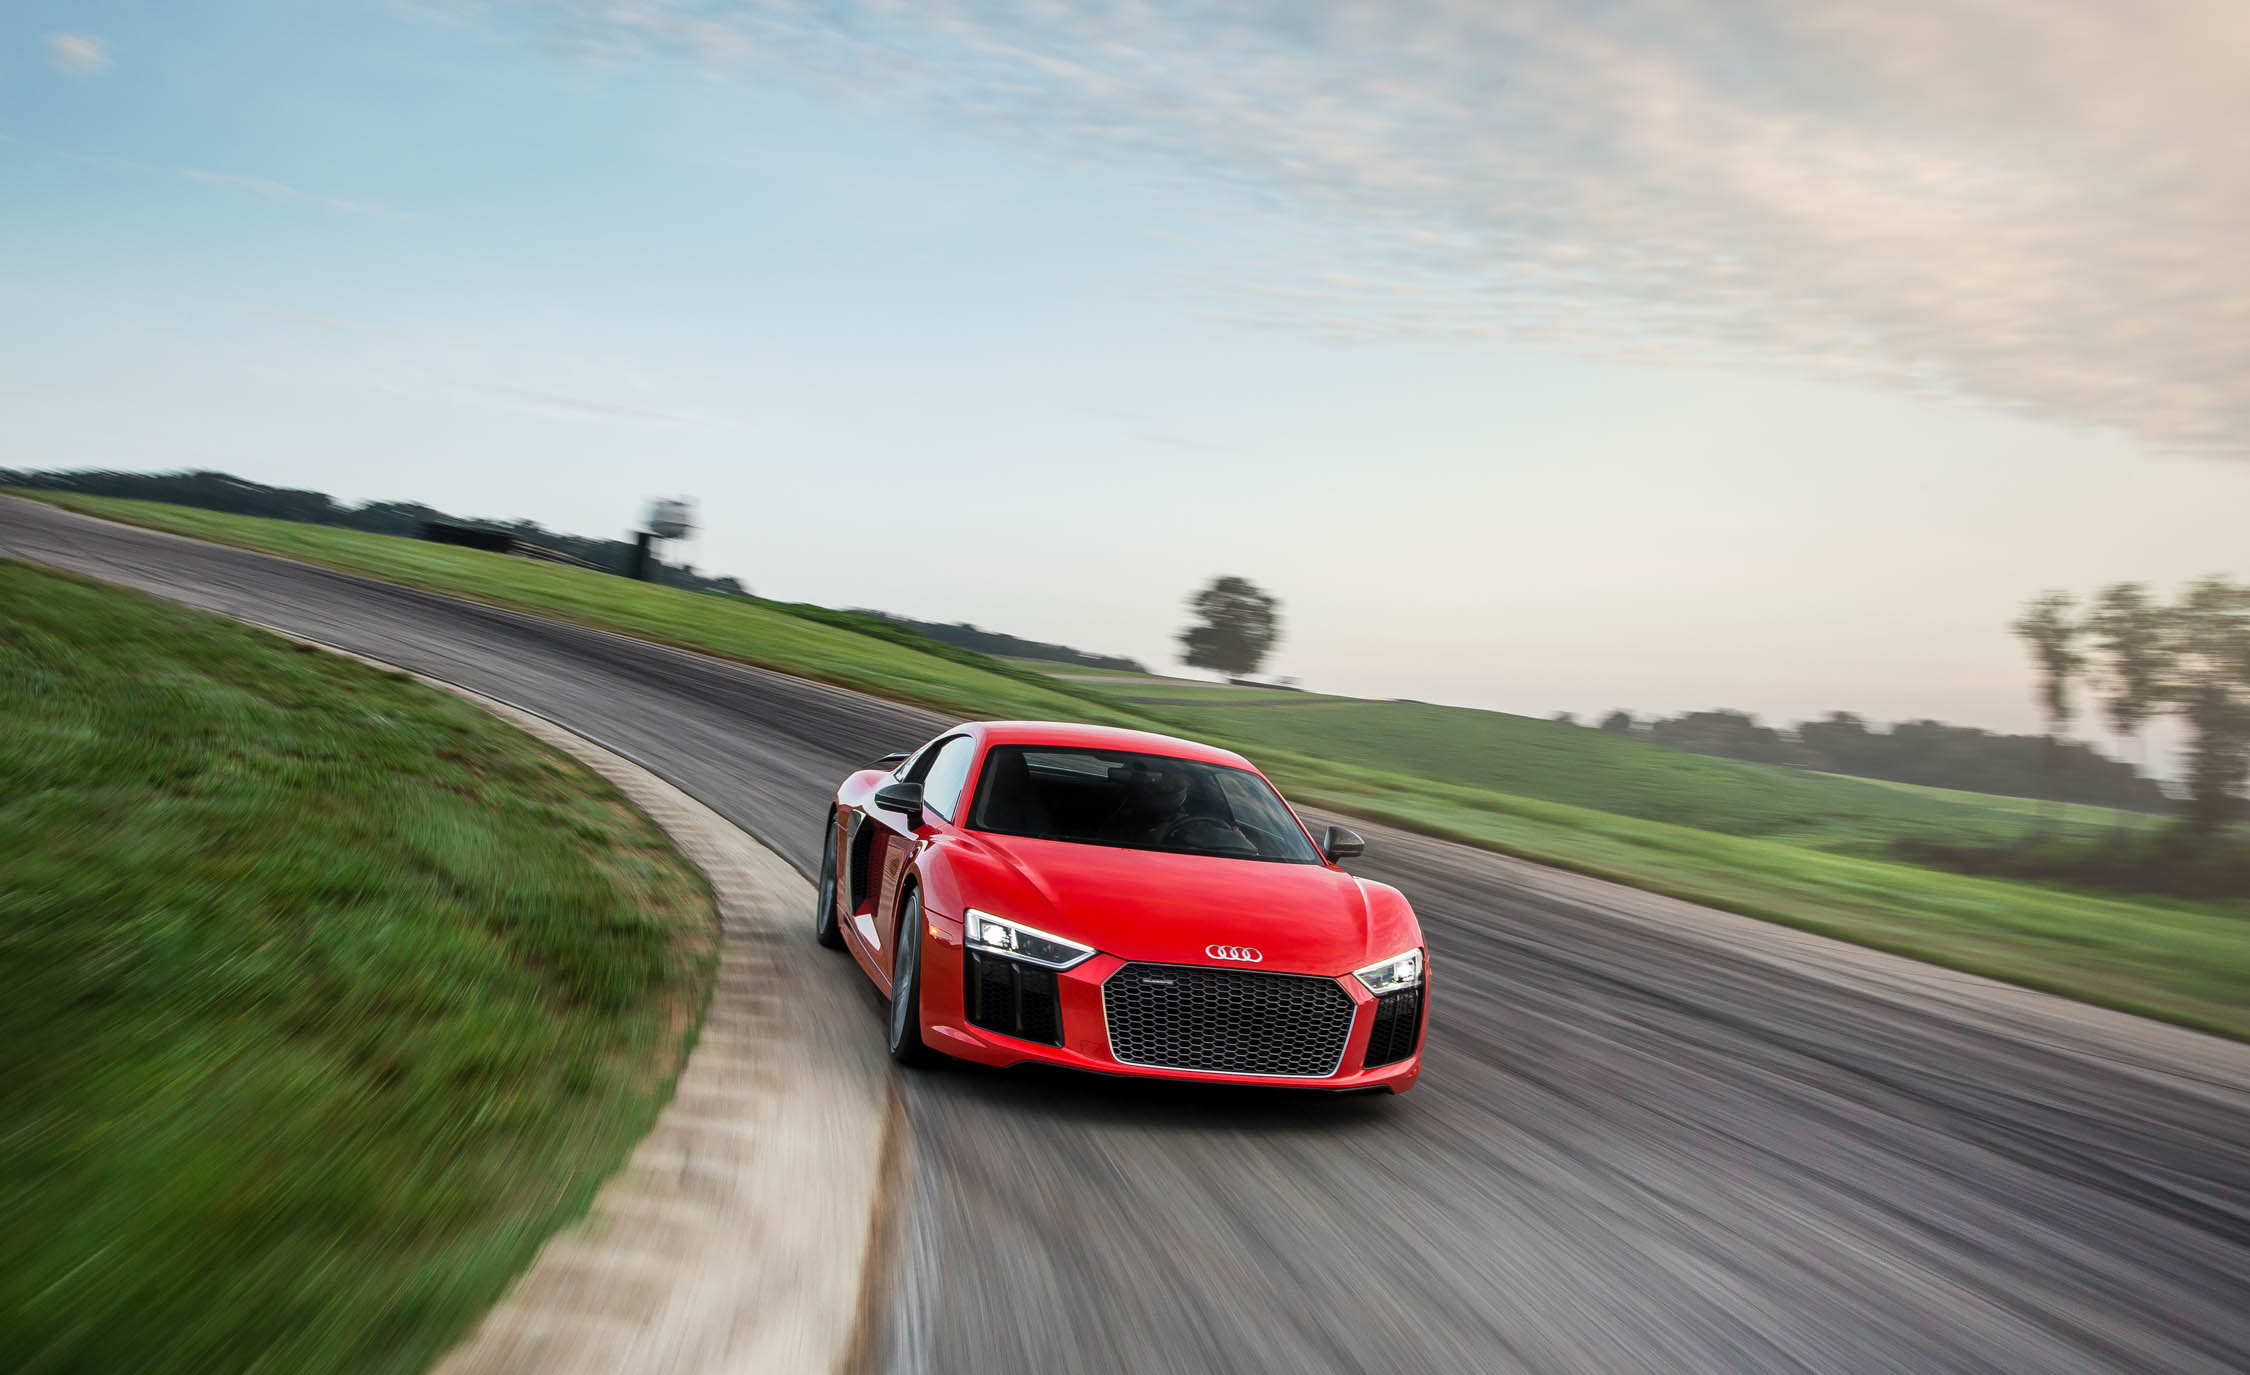 2017 Audi R8 V 10 Plus (Photo 16 of 19)